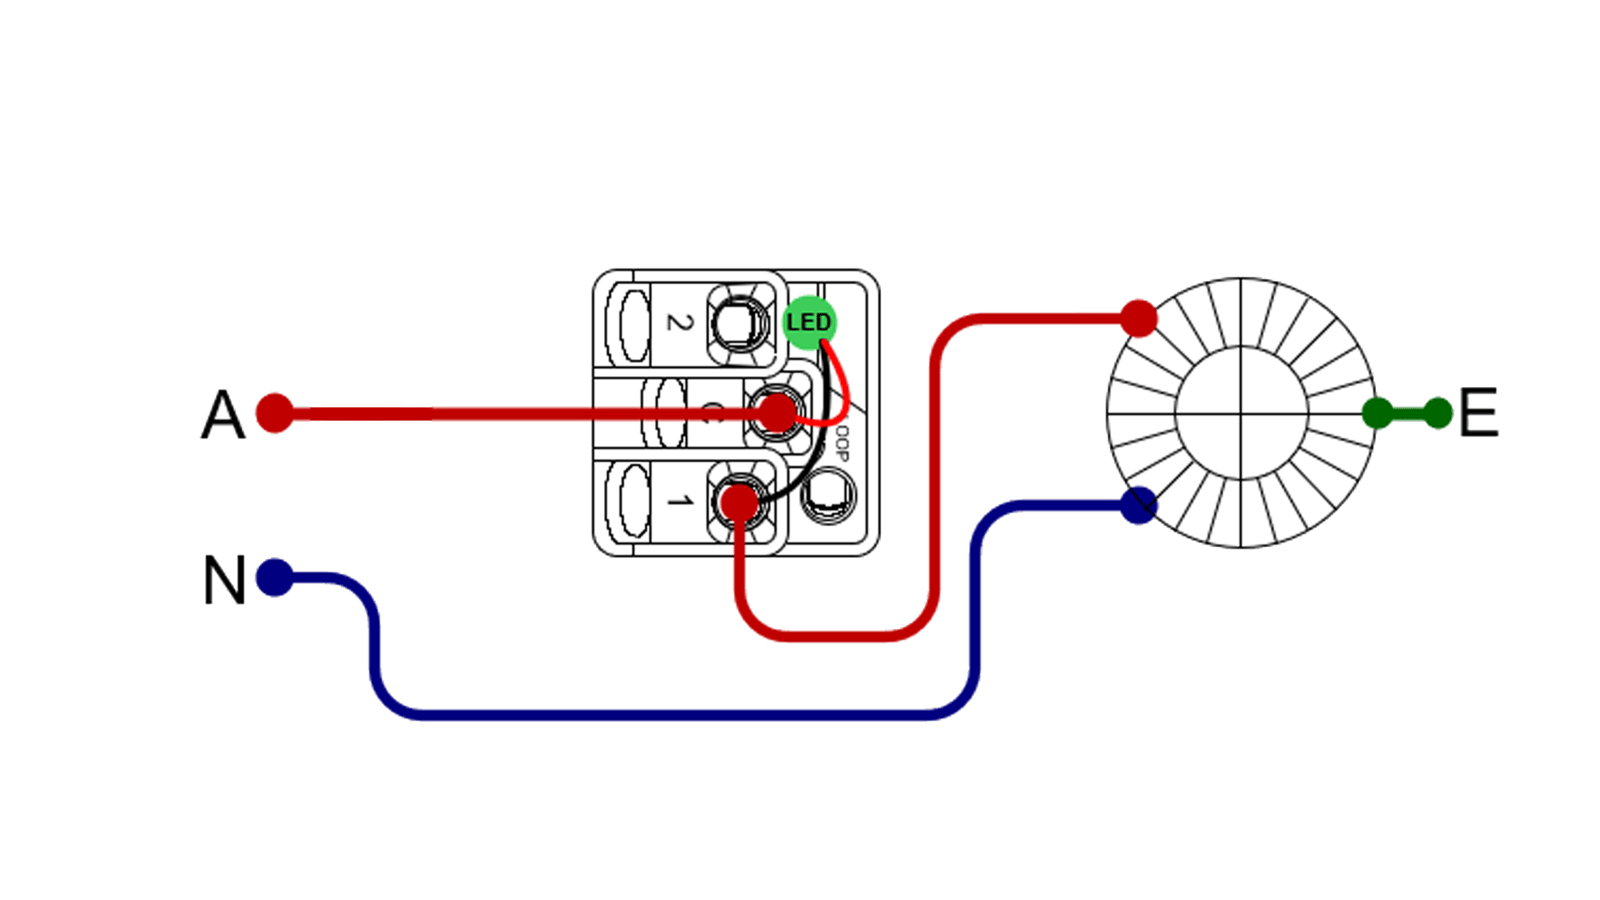 Hpm Light Switch Wiring Diagram